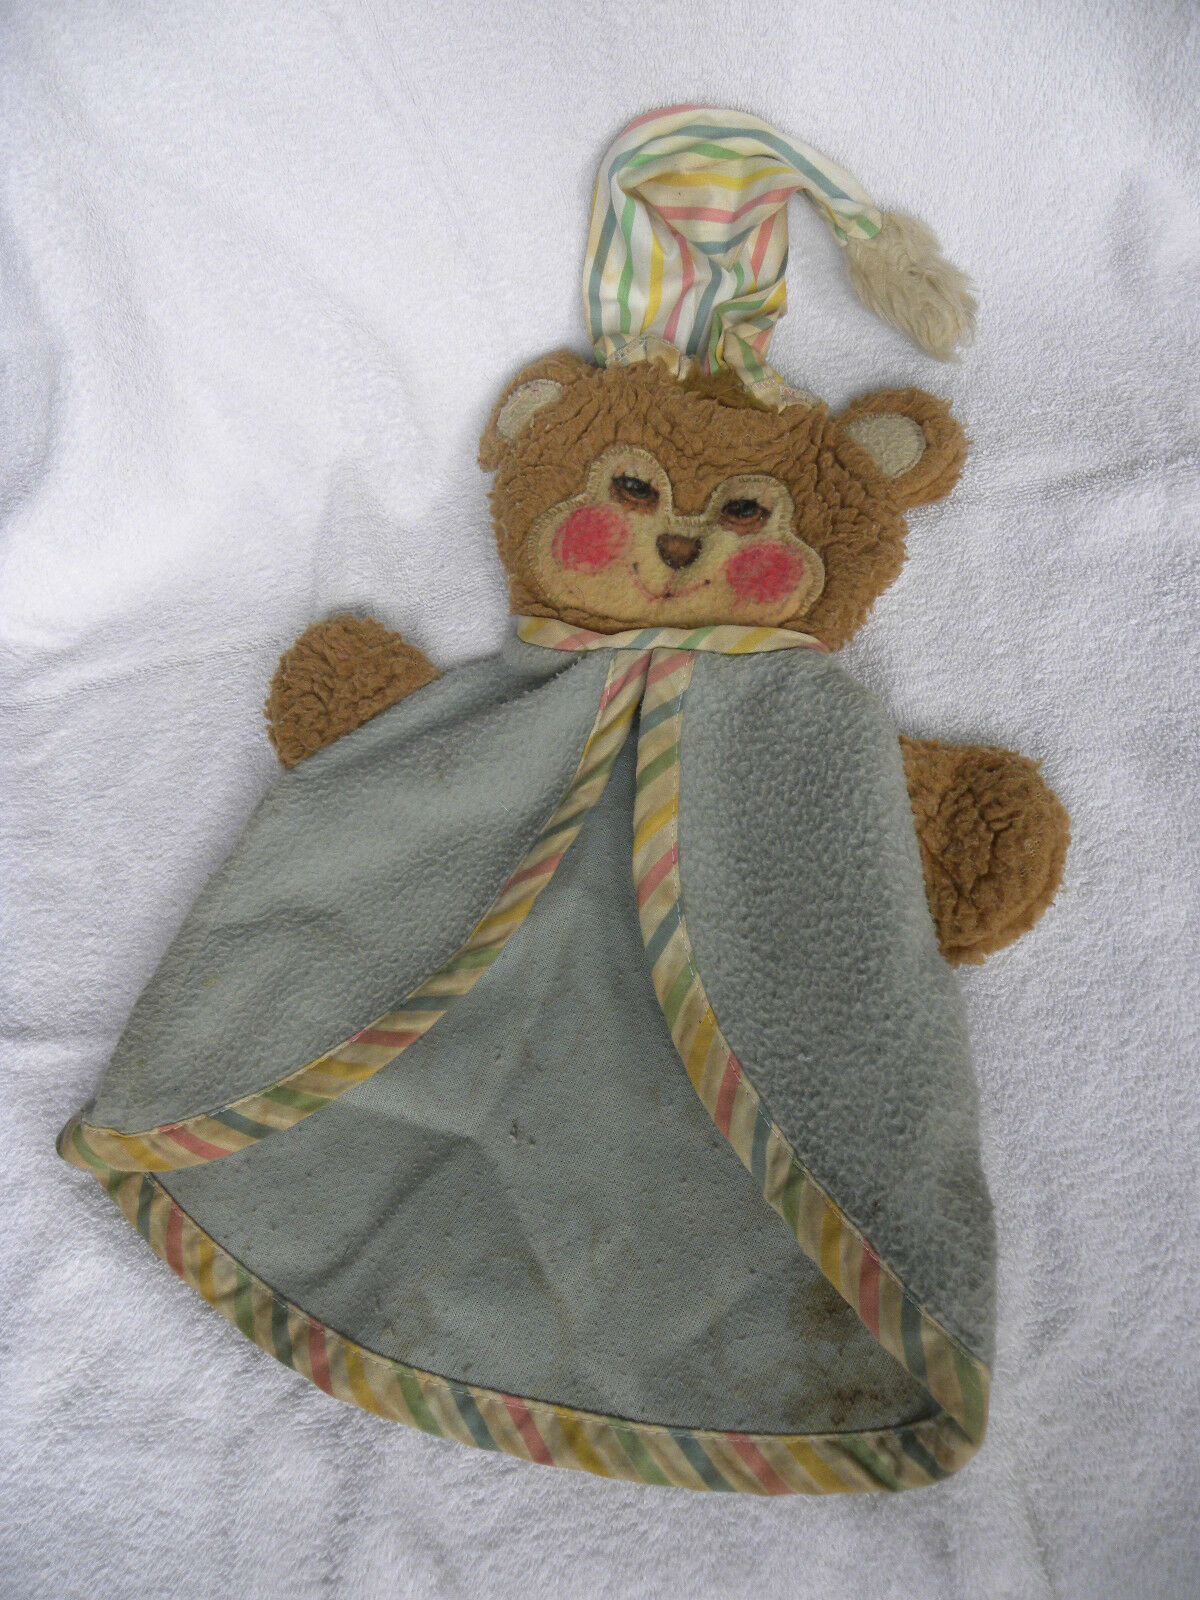 VINTAGE  FISHER PRICE   1404 TEDDY BEAR SECURITY BLANKET - EB51